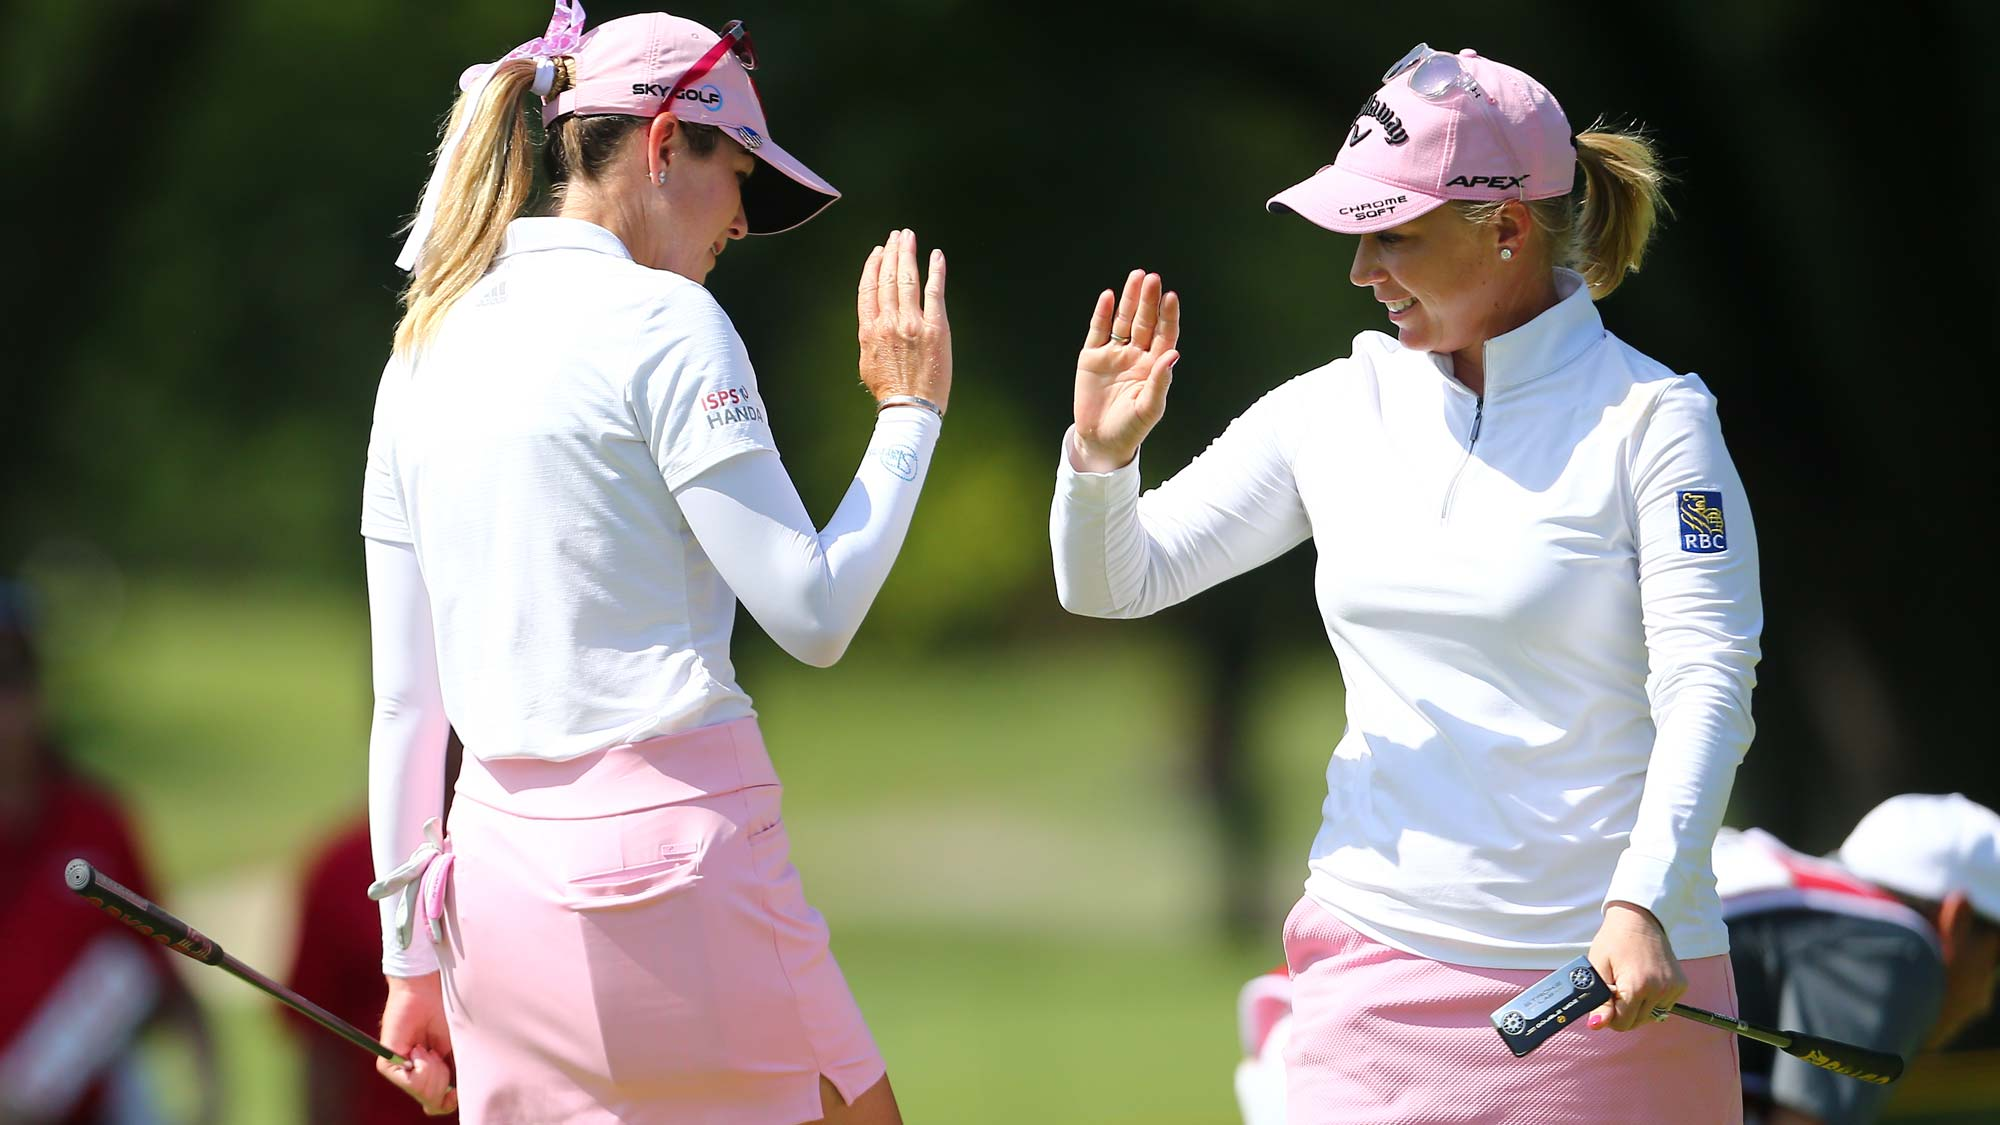 (R-L) Morgan Pressel celebrates her birdie putt with Paula Creamer on the 12th hole during the first round of the Dow Great Lakes Bay Invitational